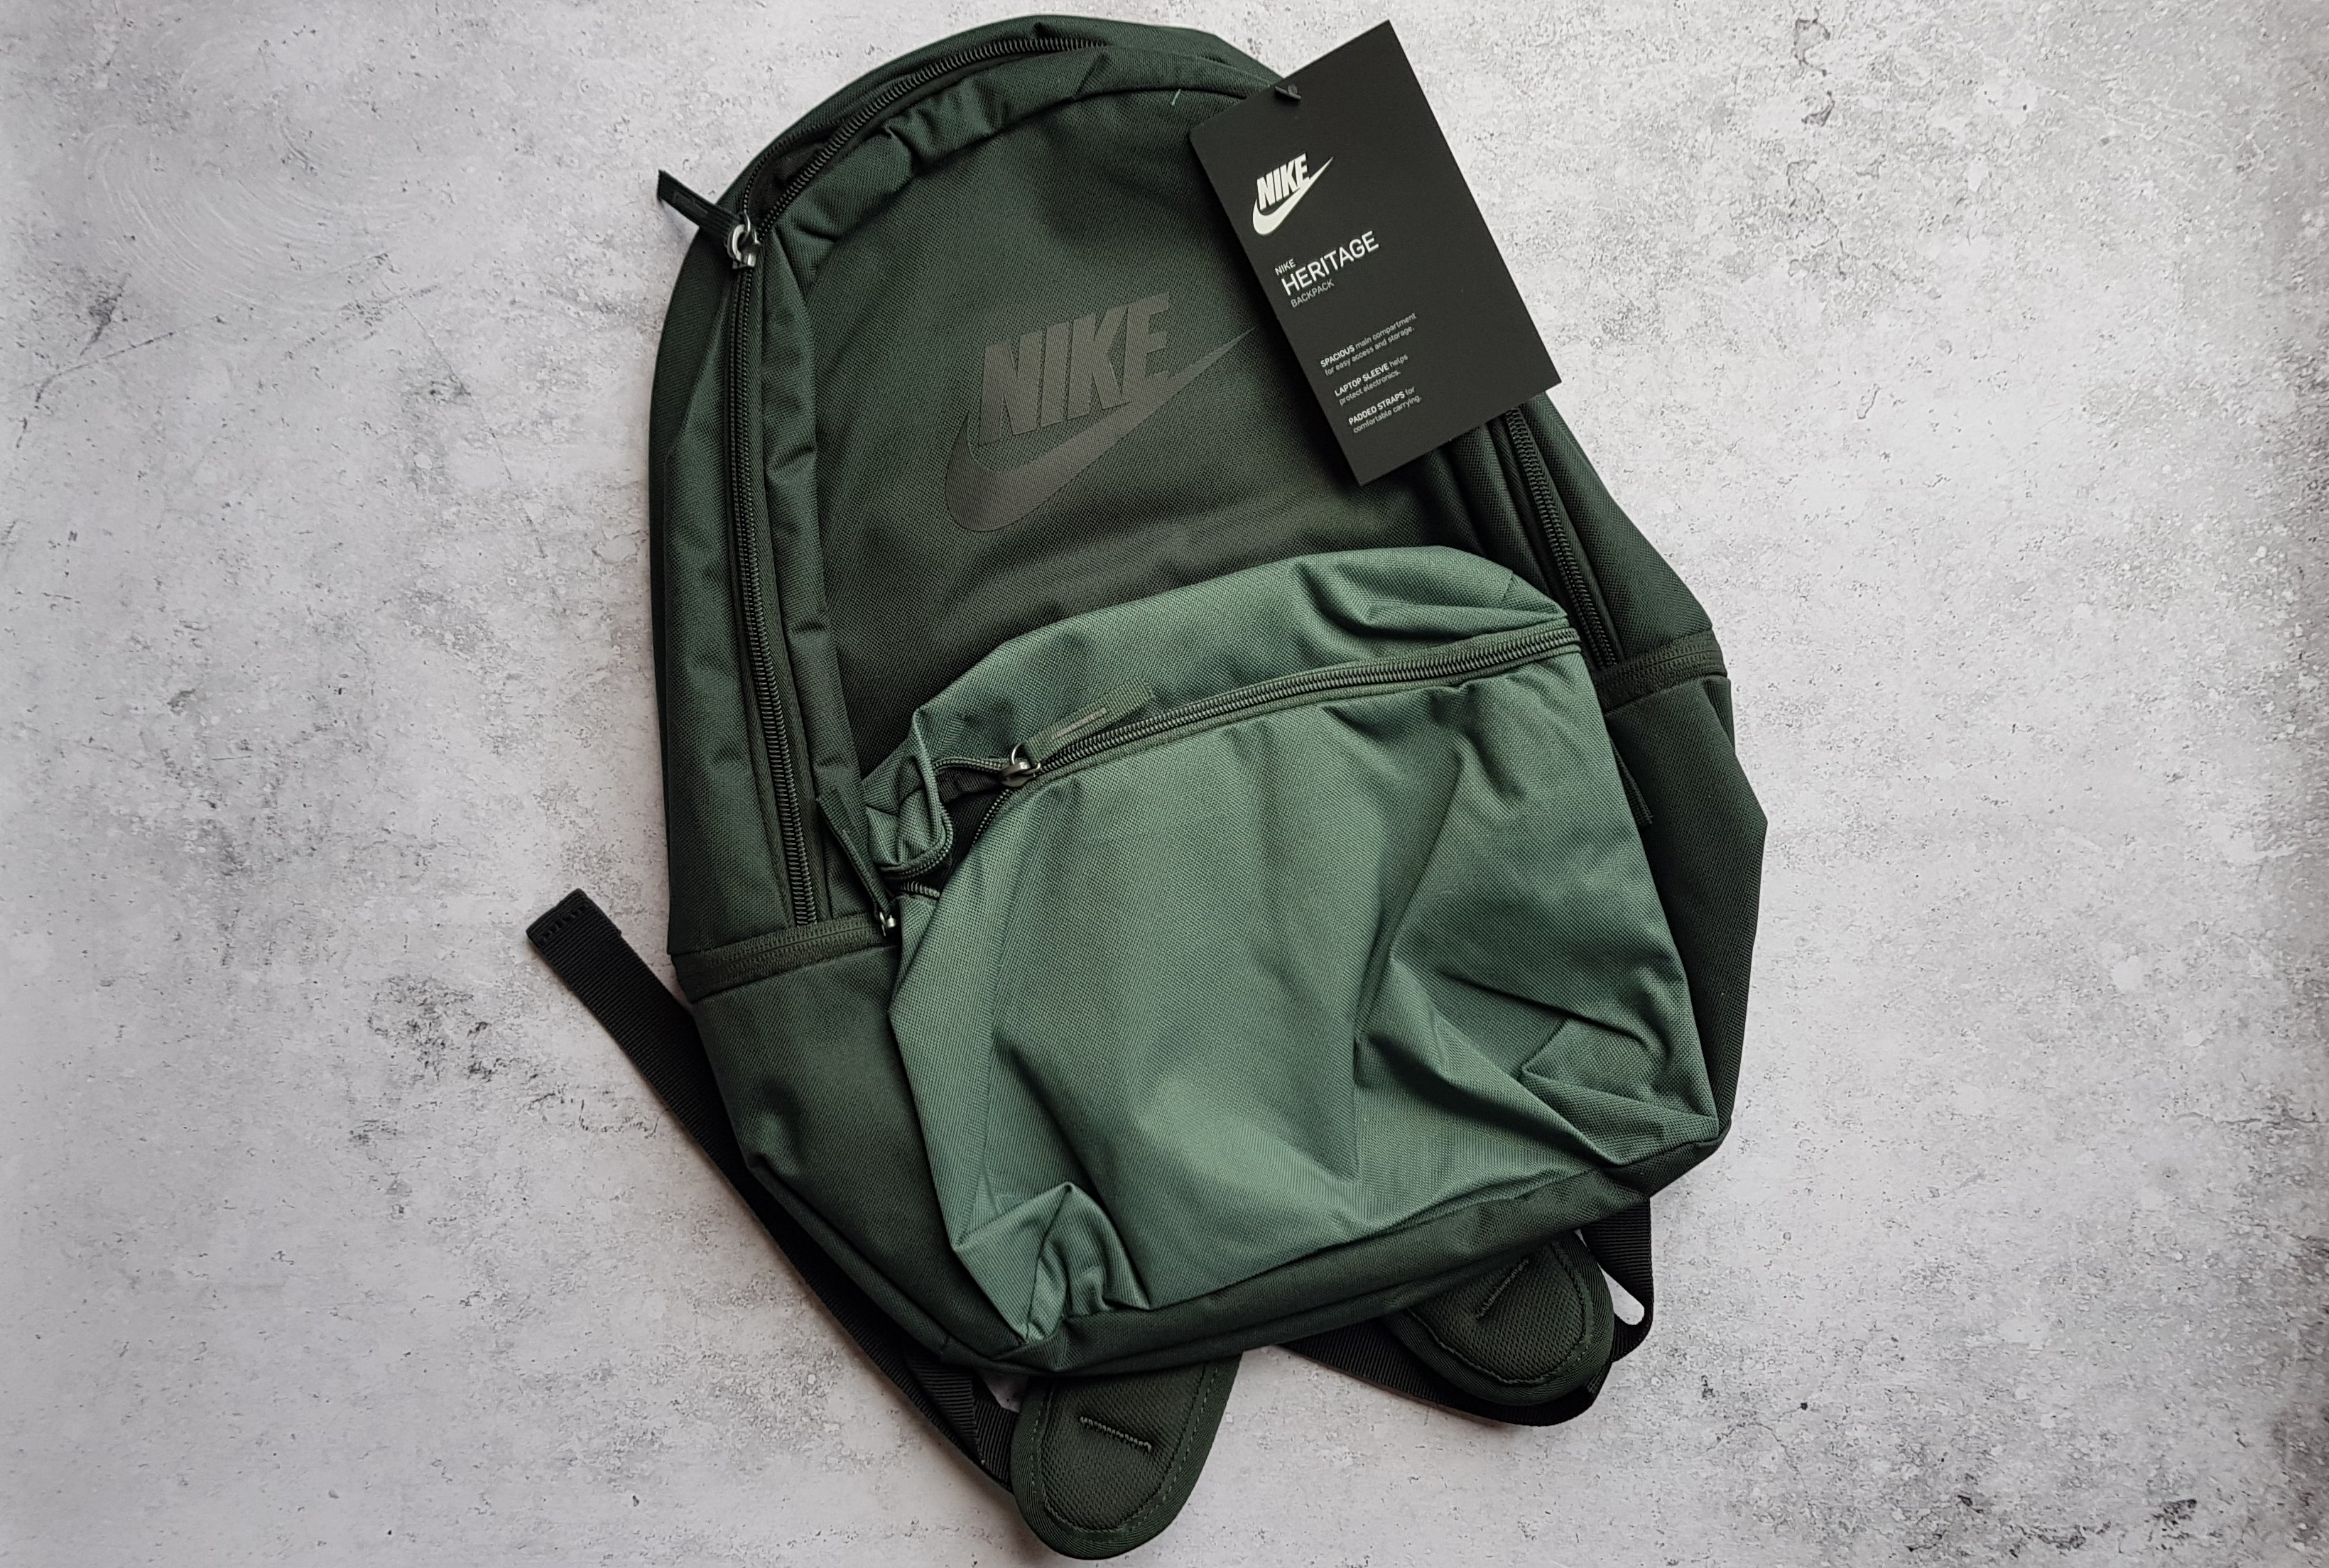 Mainline Menswear Nike Heritage backpack